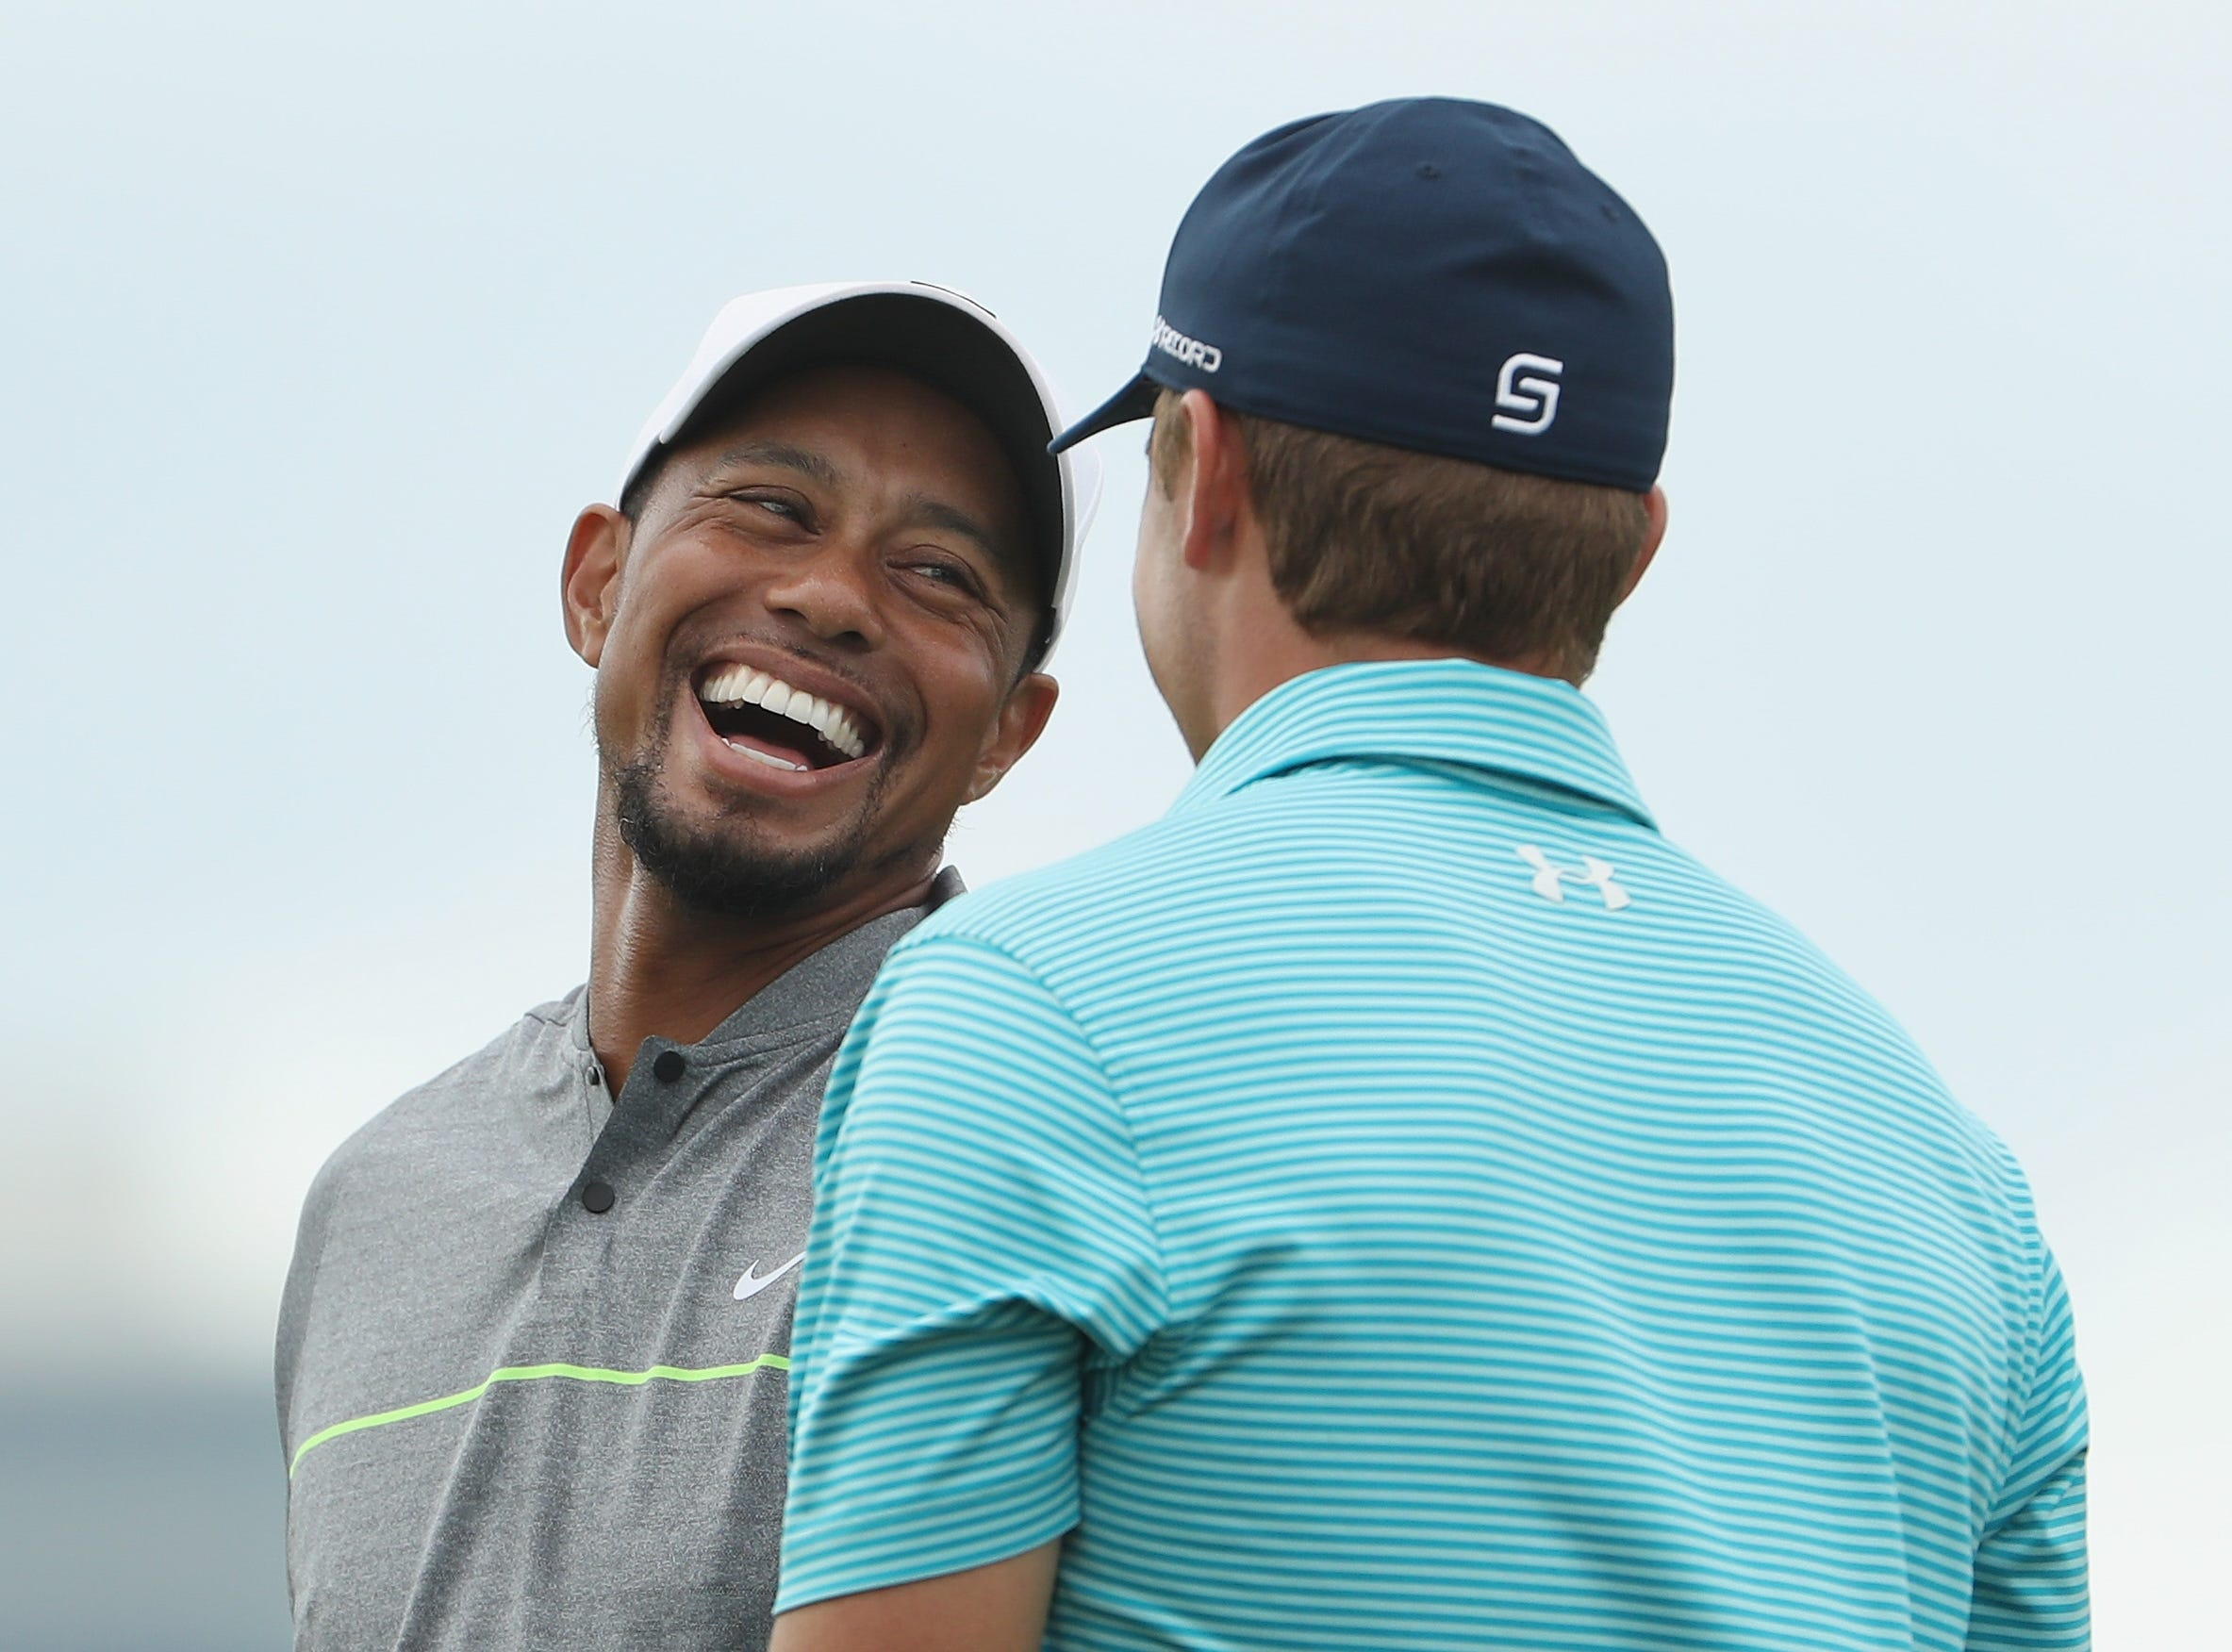 In December 2016, Woods competes for the first time in 15 months at the Hero World Challenge in the Bahamas. Here he's shown with Jordan Spieth.